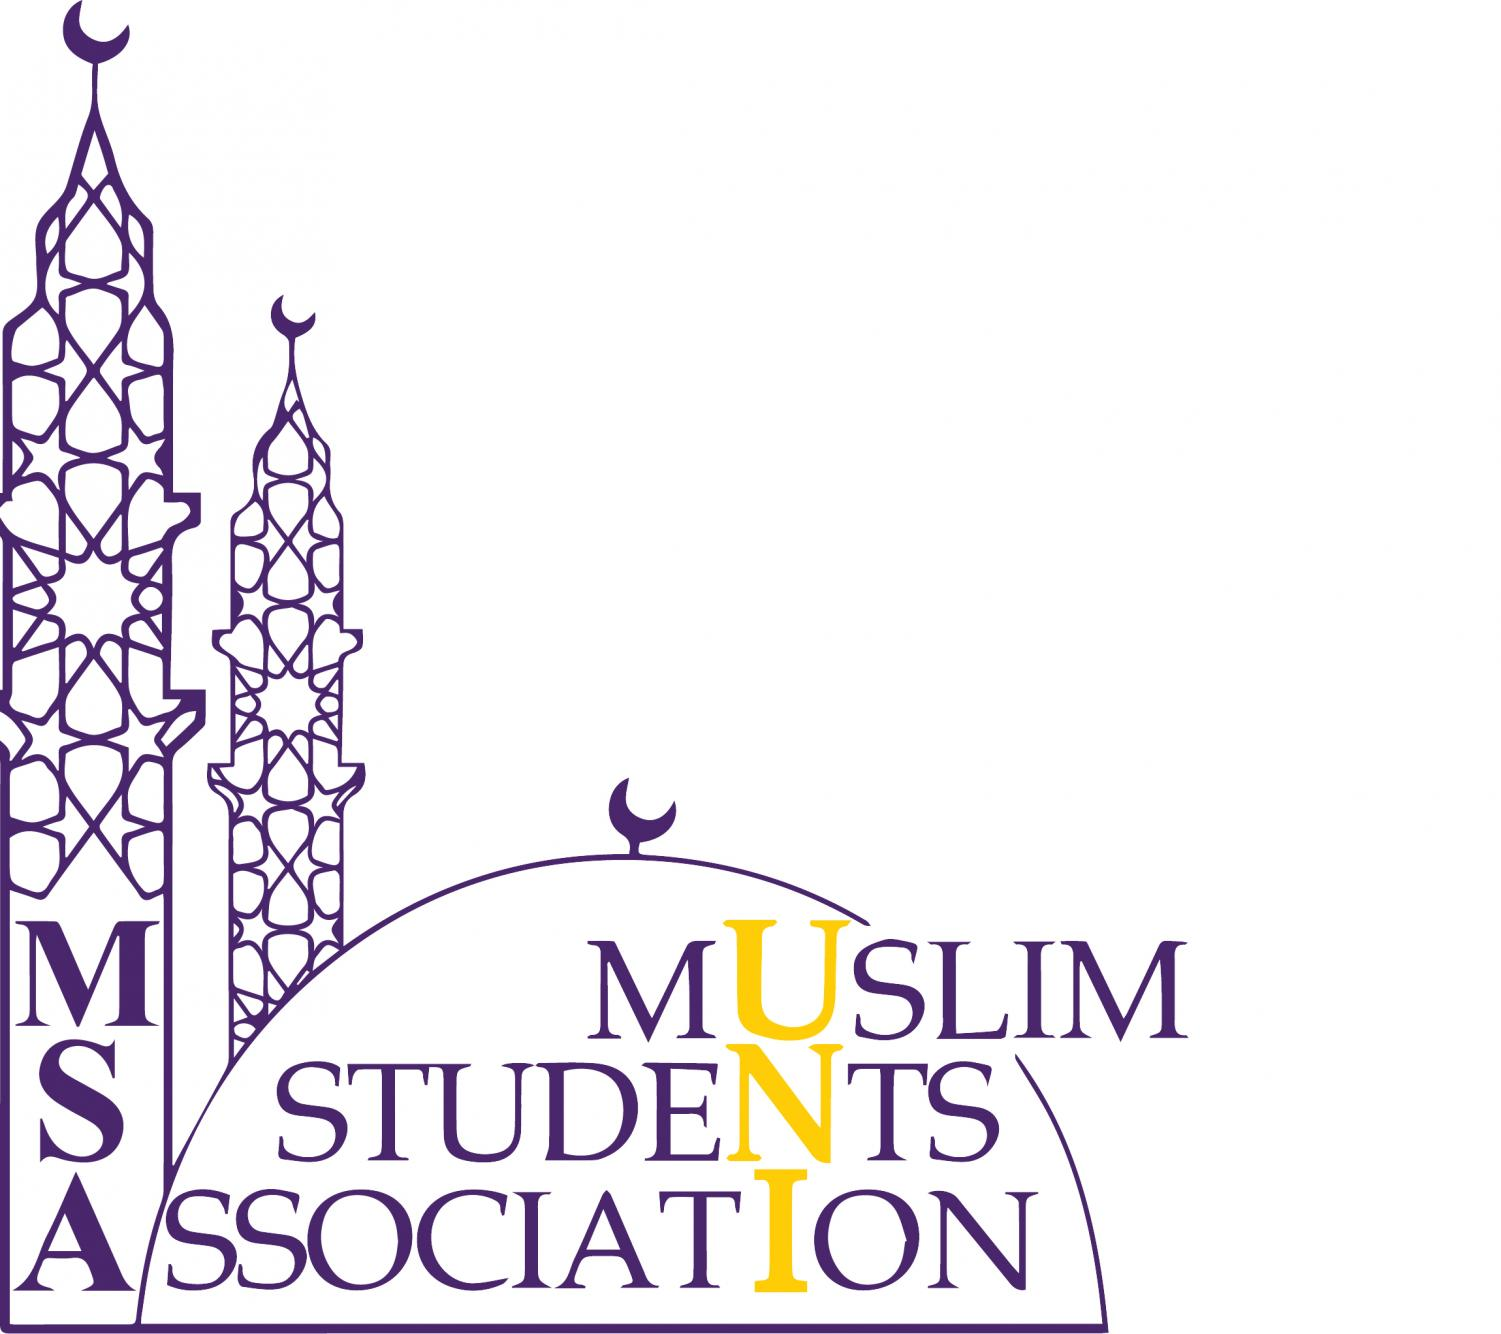 The Muslim Student Association will host the interfaith lecture this Thursday at 5 p.m. in Maucker Union Ballroom.